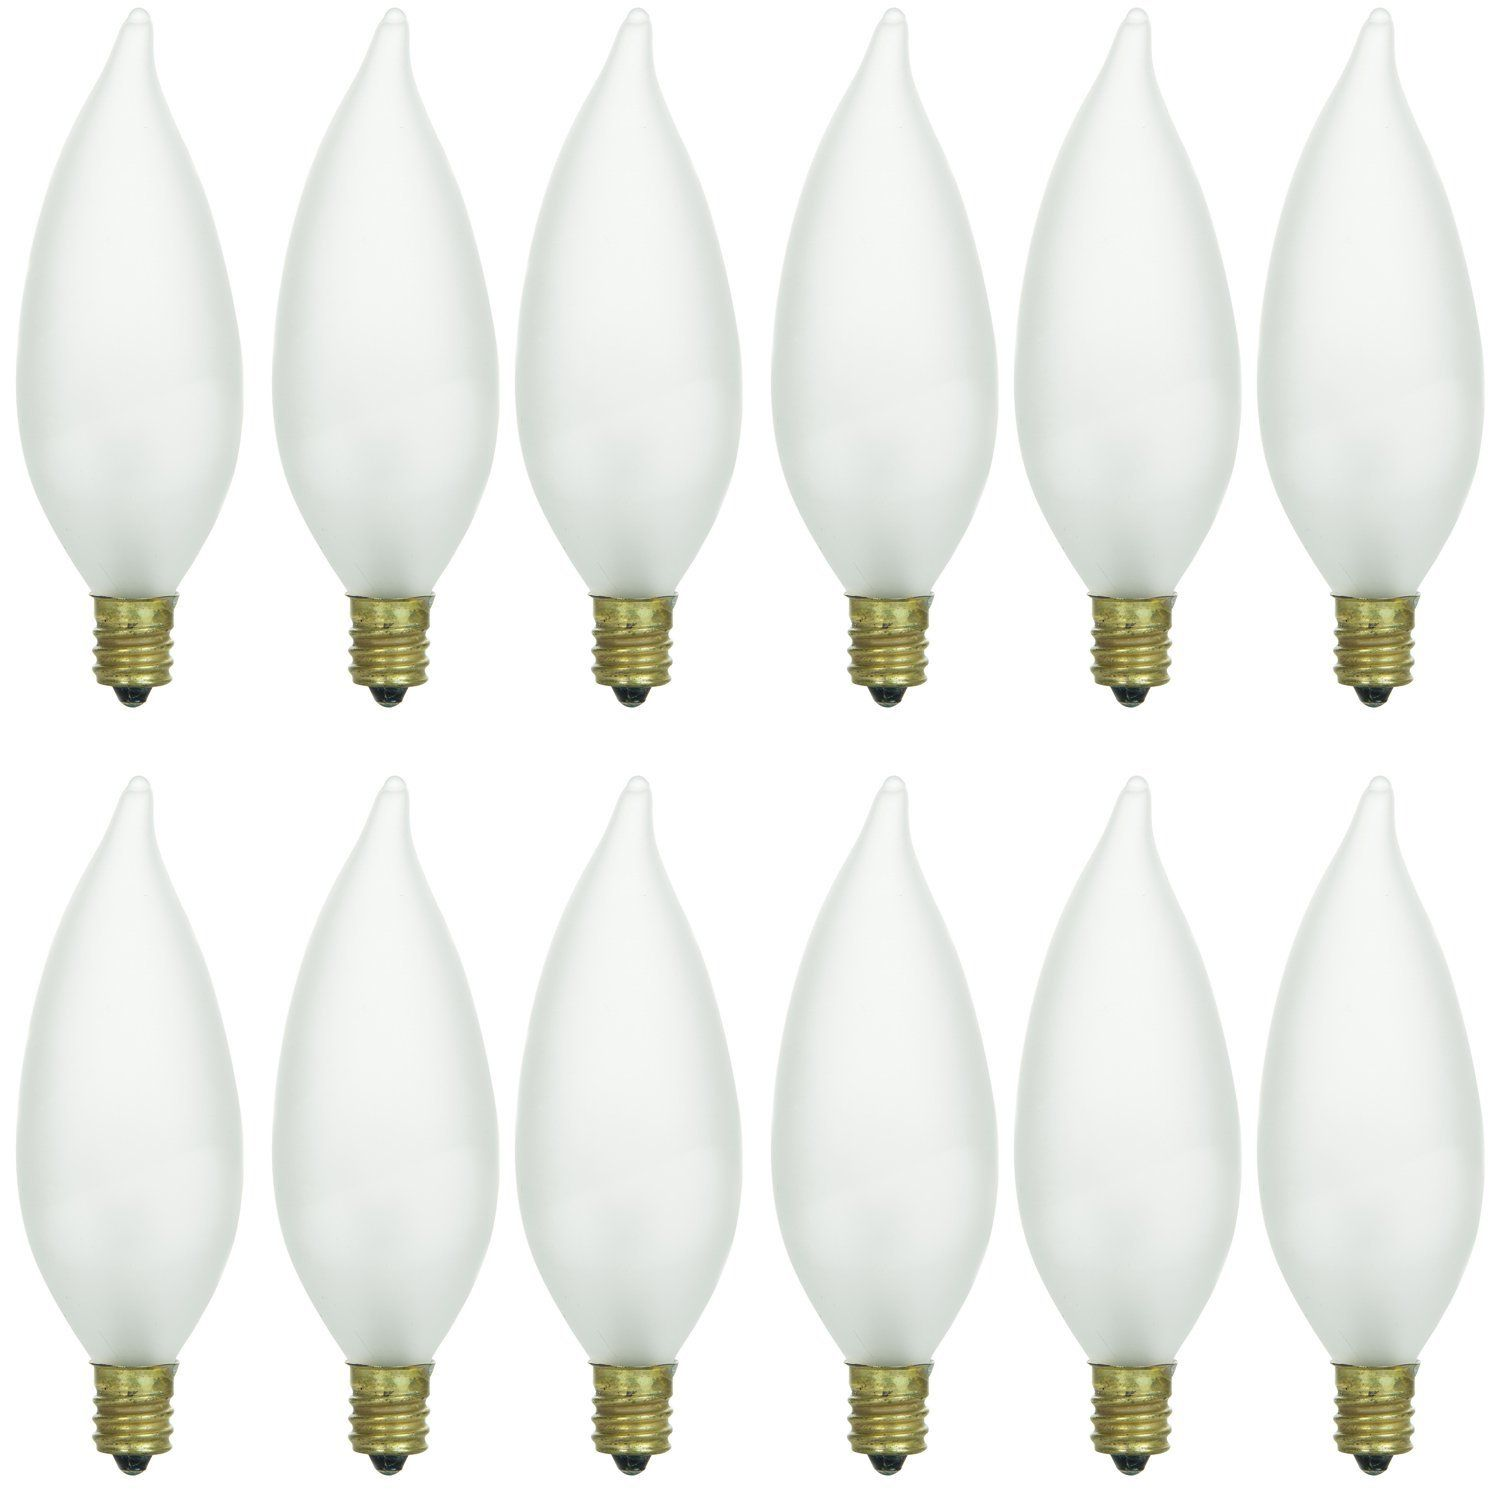 Sunlite 60cff 32 12pk Candelabra E12 Base Flame Tip 60w Incandescent Chandelier Frosted Bulb 12 Pack Light Bulb Candle Chandelier Decor Chandelier Lighting